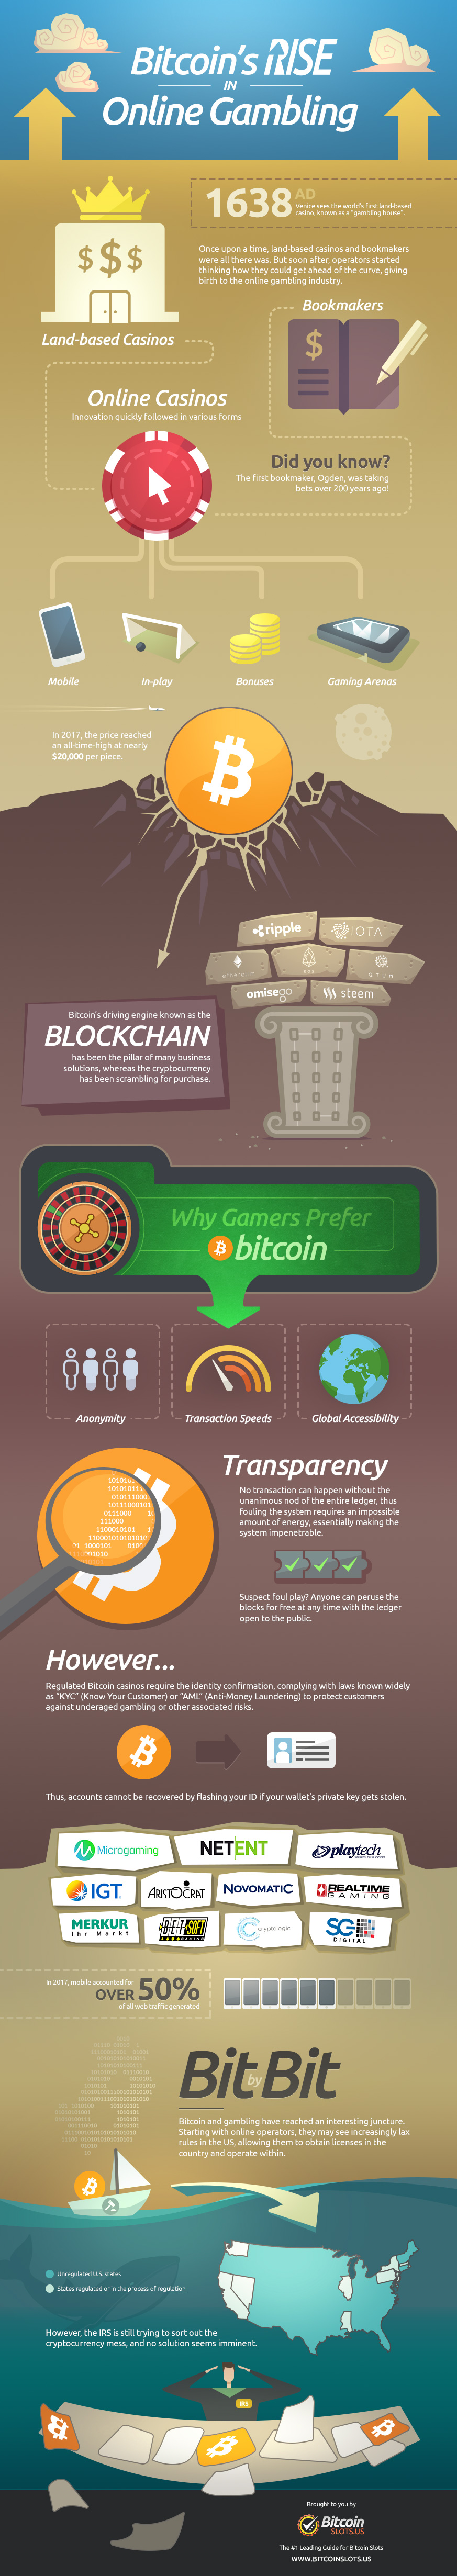 infographic rise of bitcoin in online gambling industry